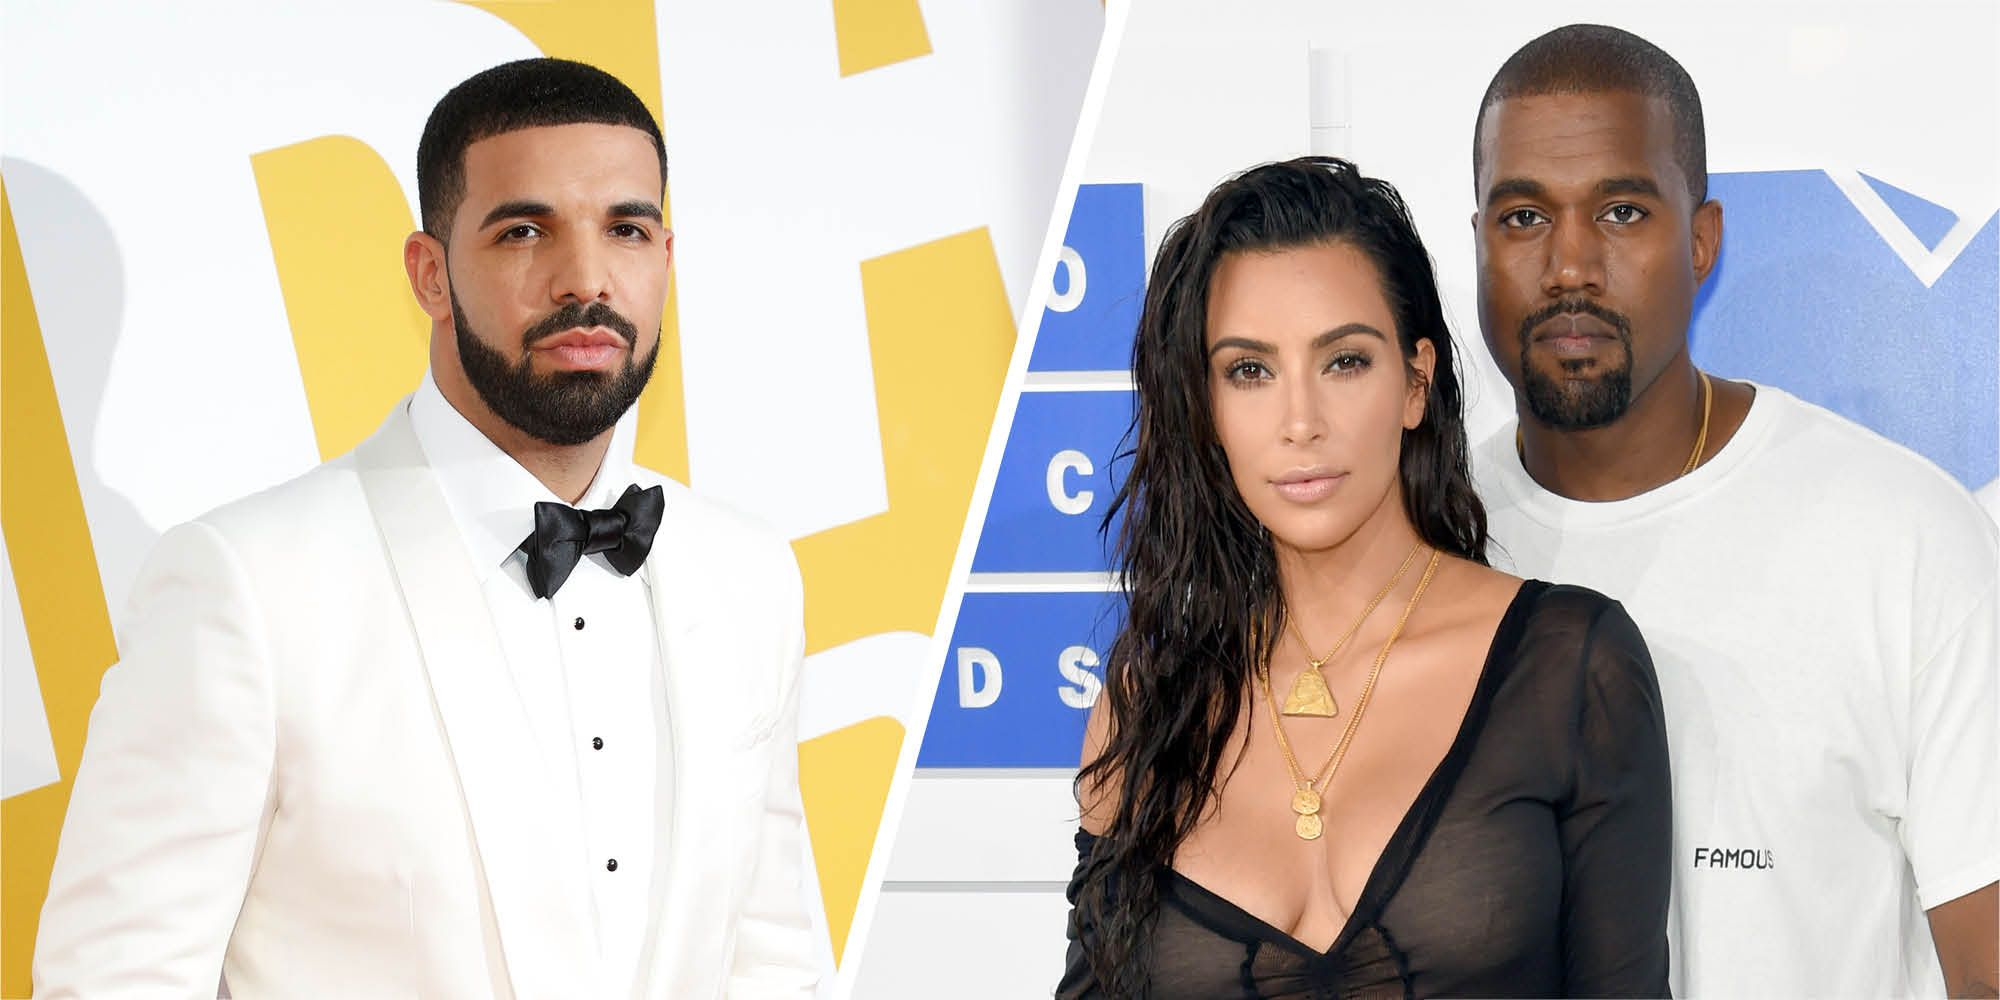 Drake Takes the Lord's Name in Vain While Disrespecting the Present Husband of Kim Kardashian, Kanye West